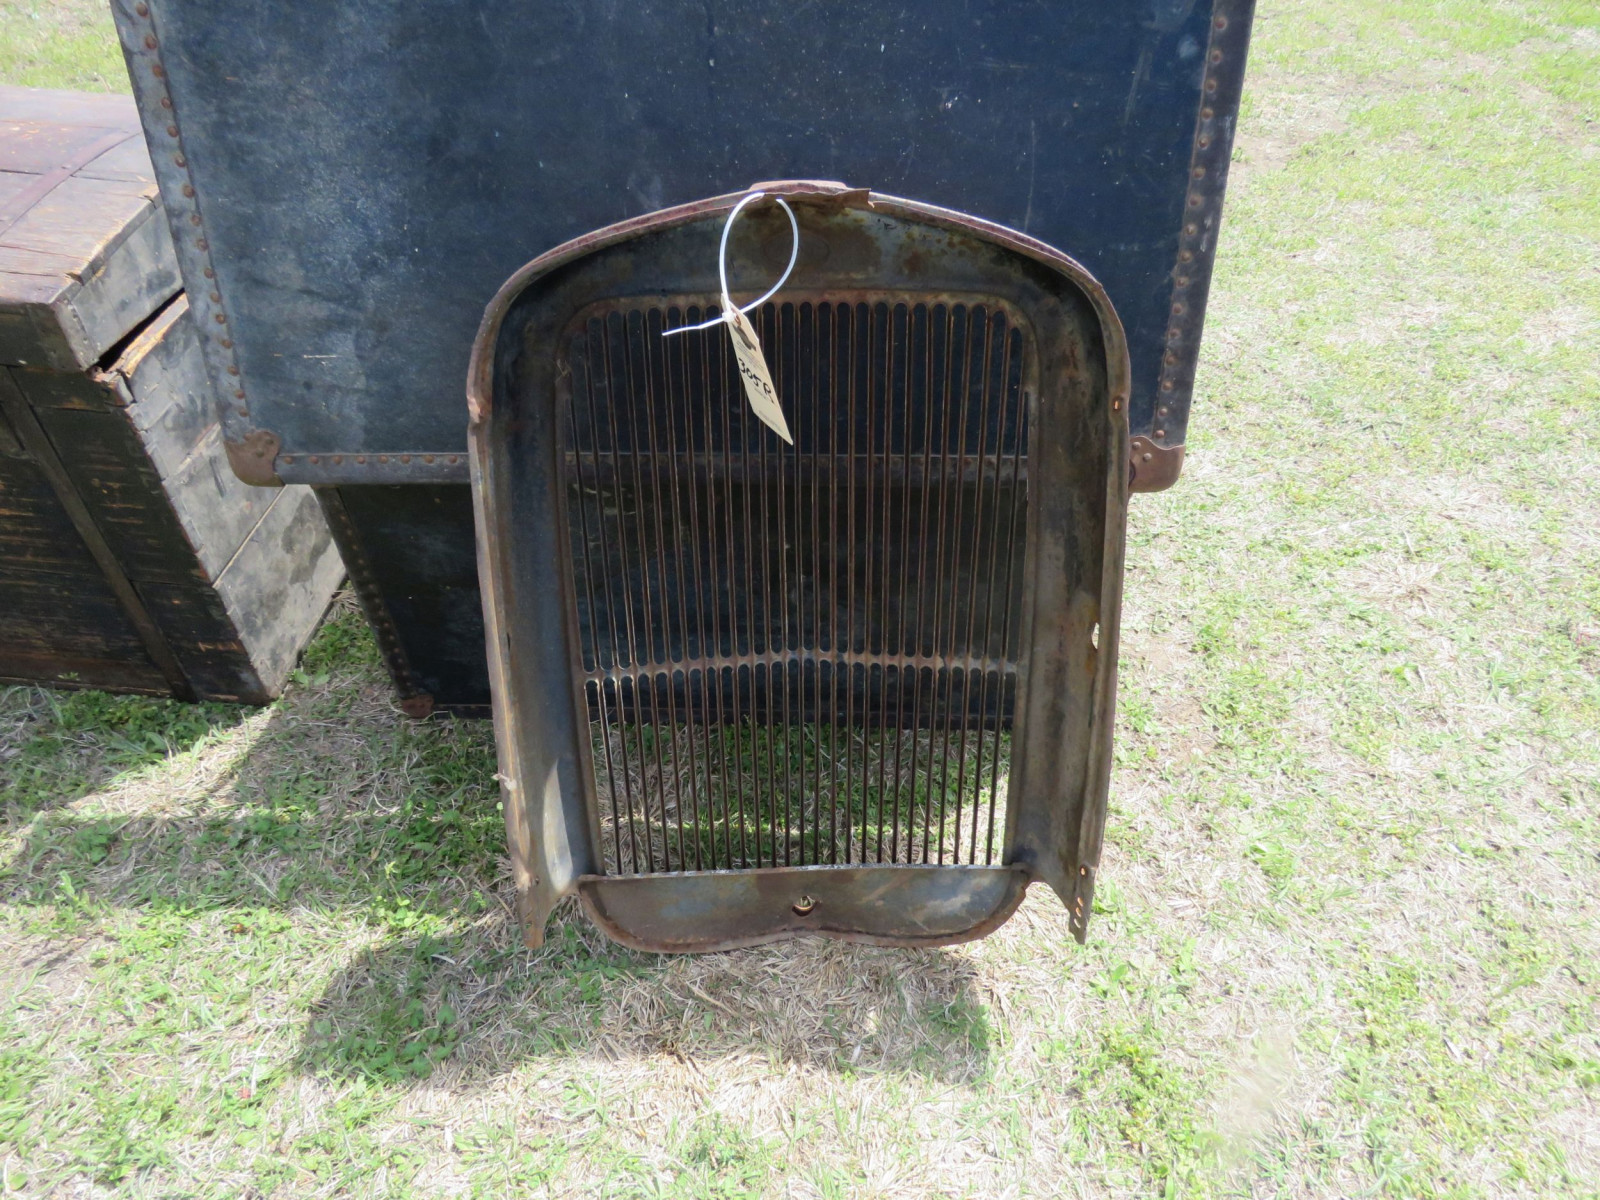 1932 FORD ORIGINAL GRILL - Image 3